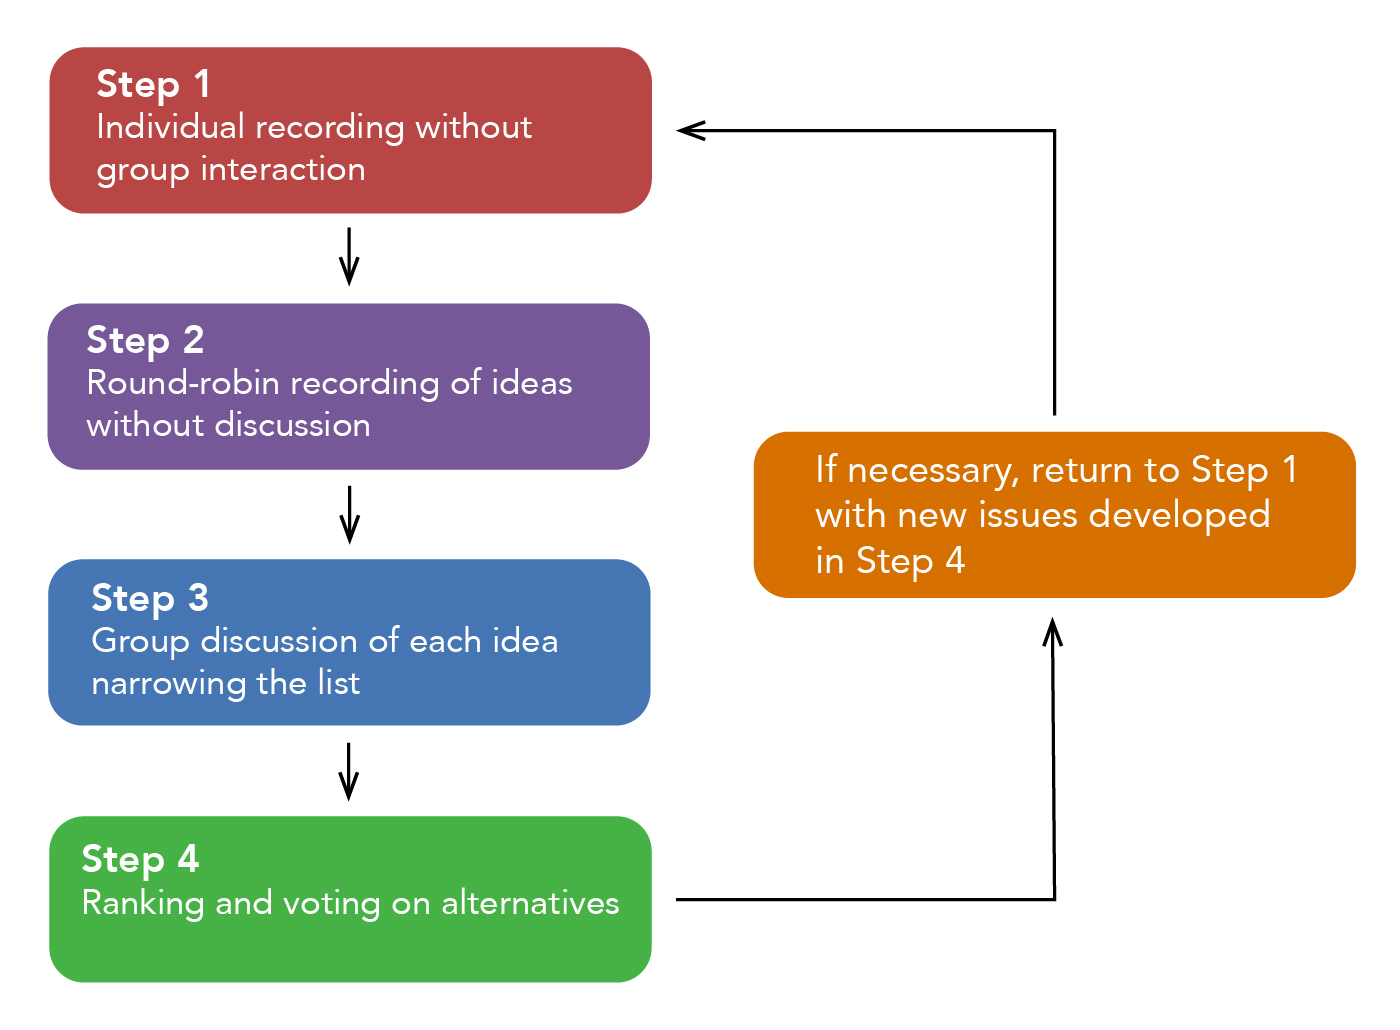 A chart showing the four steps in the nominal group technique. Step 1 is individual recording without group interaction. Step 2 is round-robin recording of ideas without discussion. Step 3 is group discussion of each idea narrowing the list. Step 4 is ranking and voting on alternatives. If necessary, you can return to Step 1 with new issues developed in Step 4.